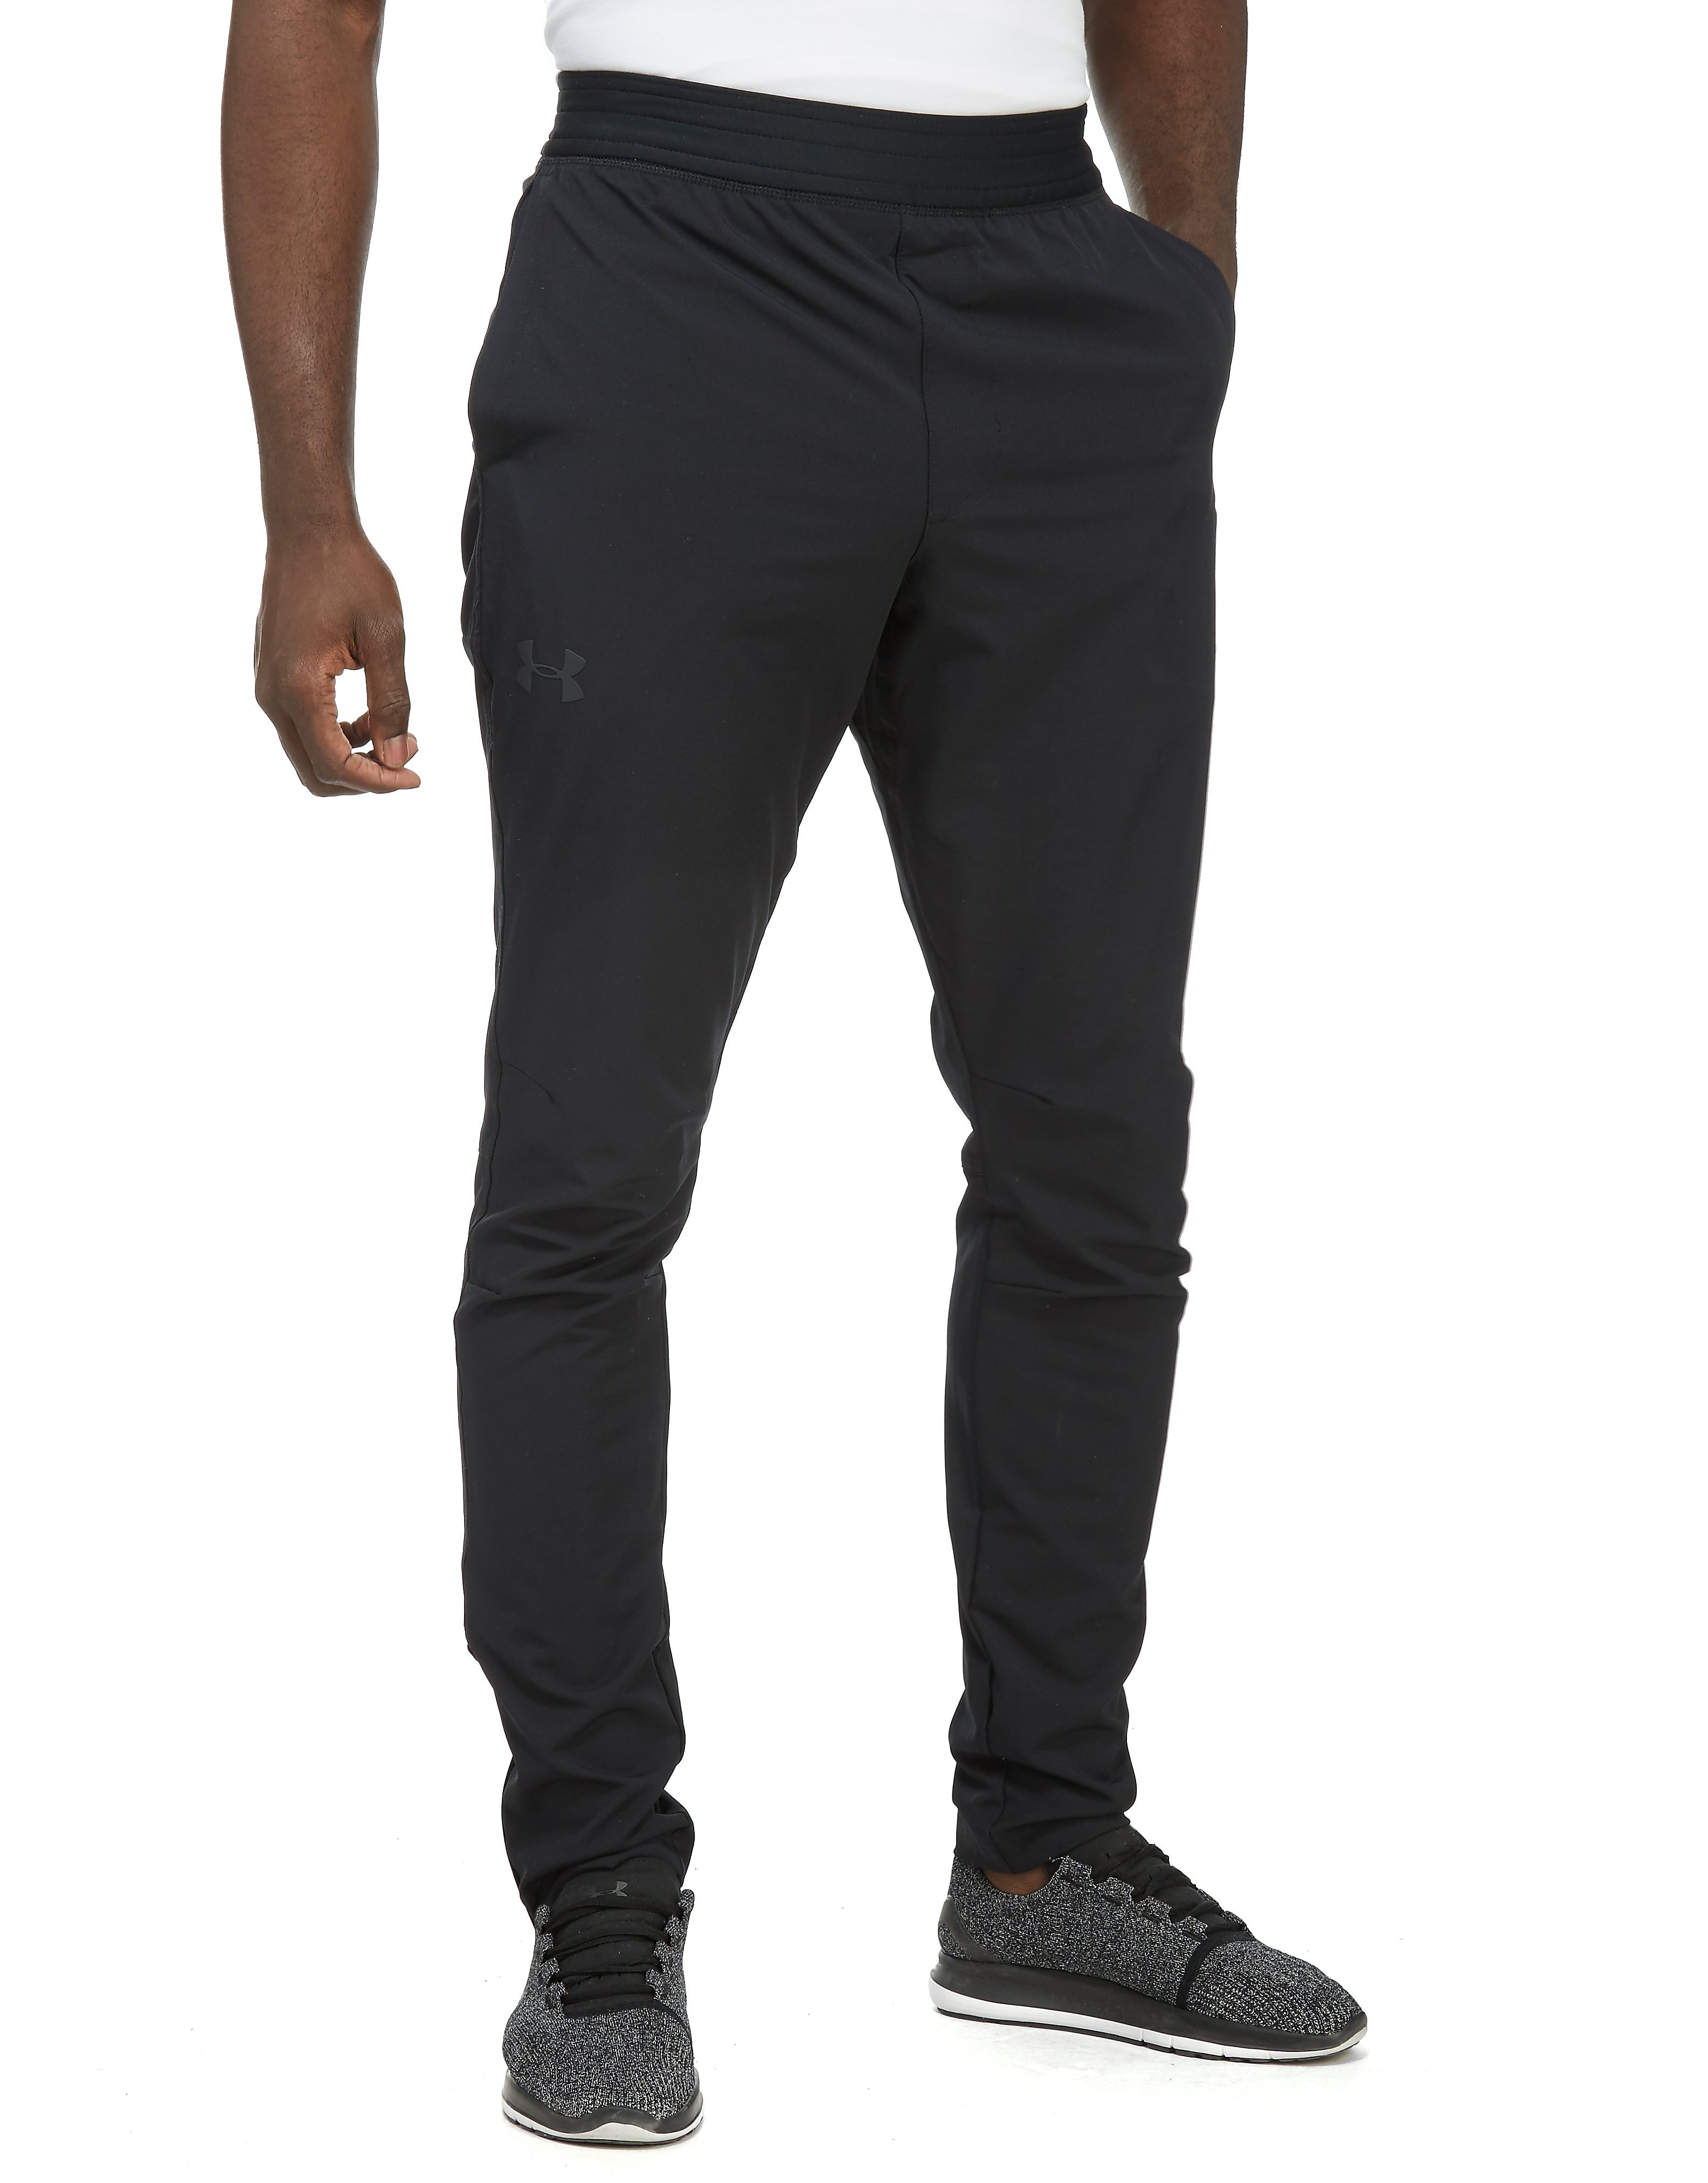 Under Armour Woven Pants